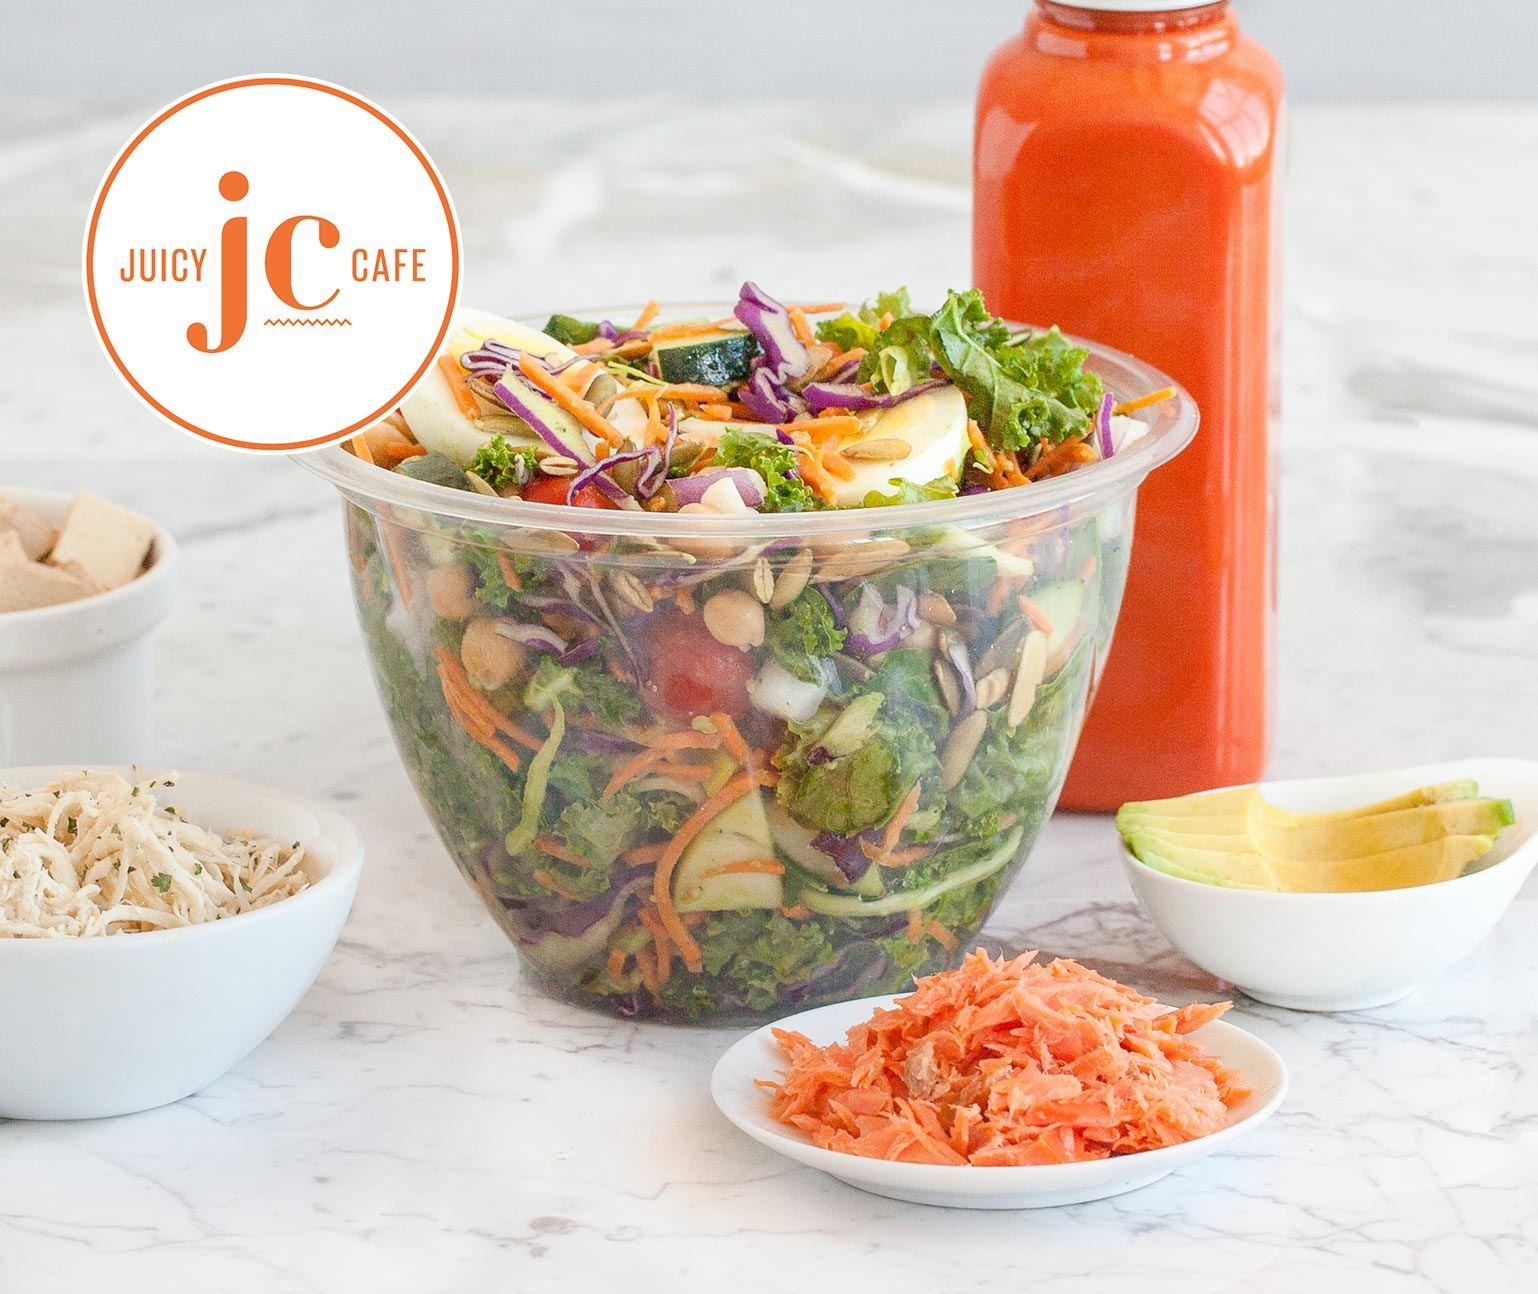 Colorful salad in a plastic bowl with juice in plastic bottle on a marble countertop